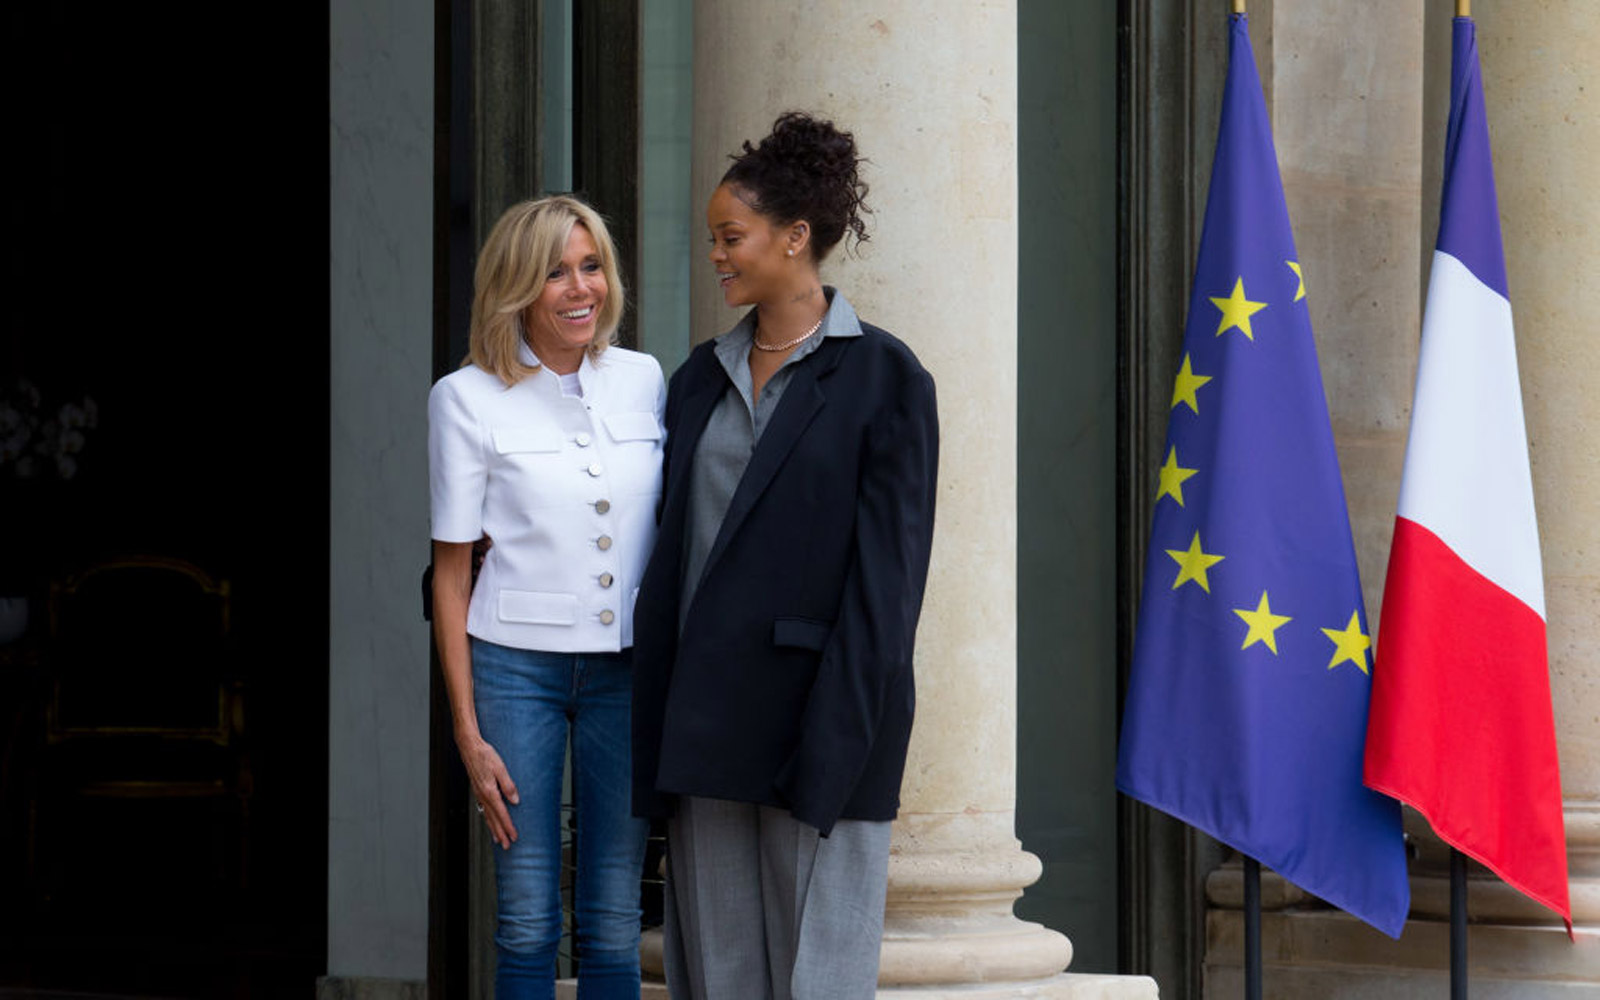 Rihanna Hanging Out With French First Lady Brigitte Macron in Paris Is the Alliance of Your Dreams